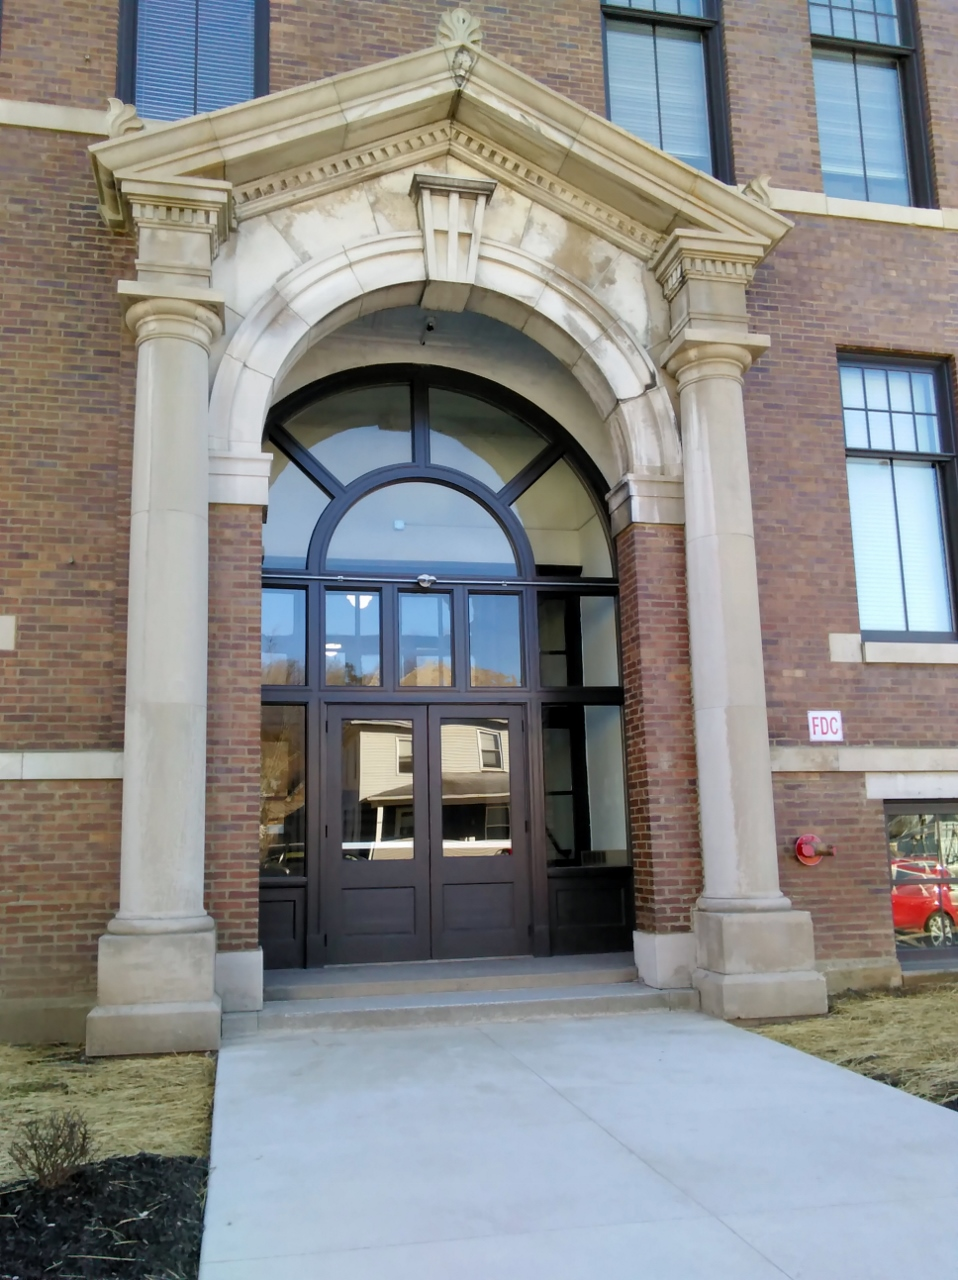 Nelsonville School Commons 3-4-2018 3-56-36 PM